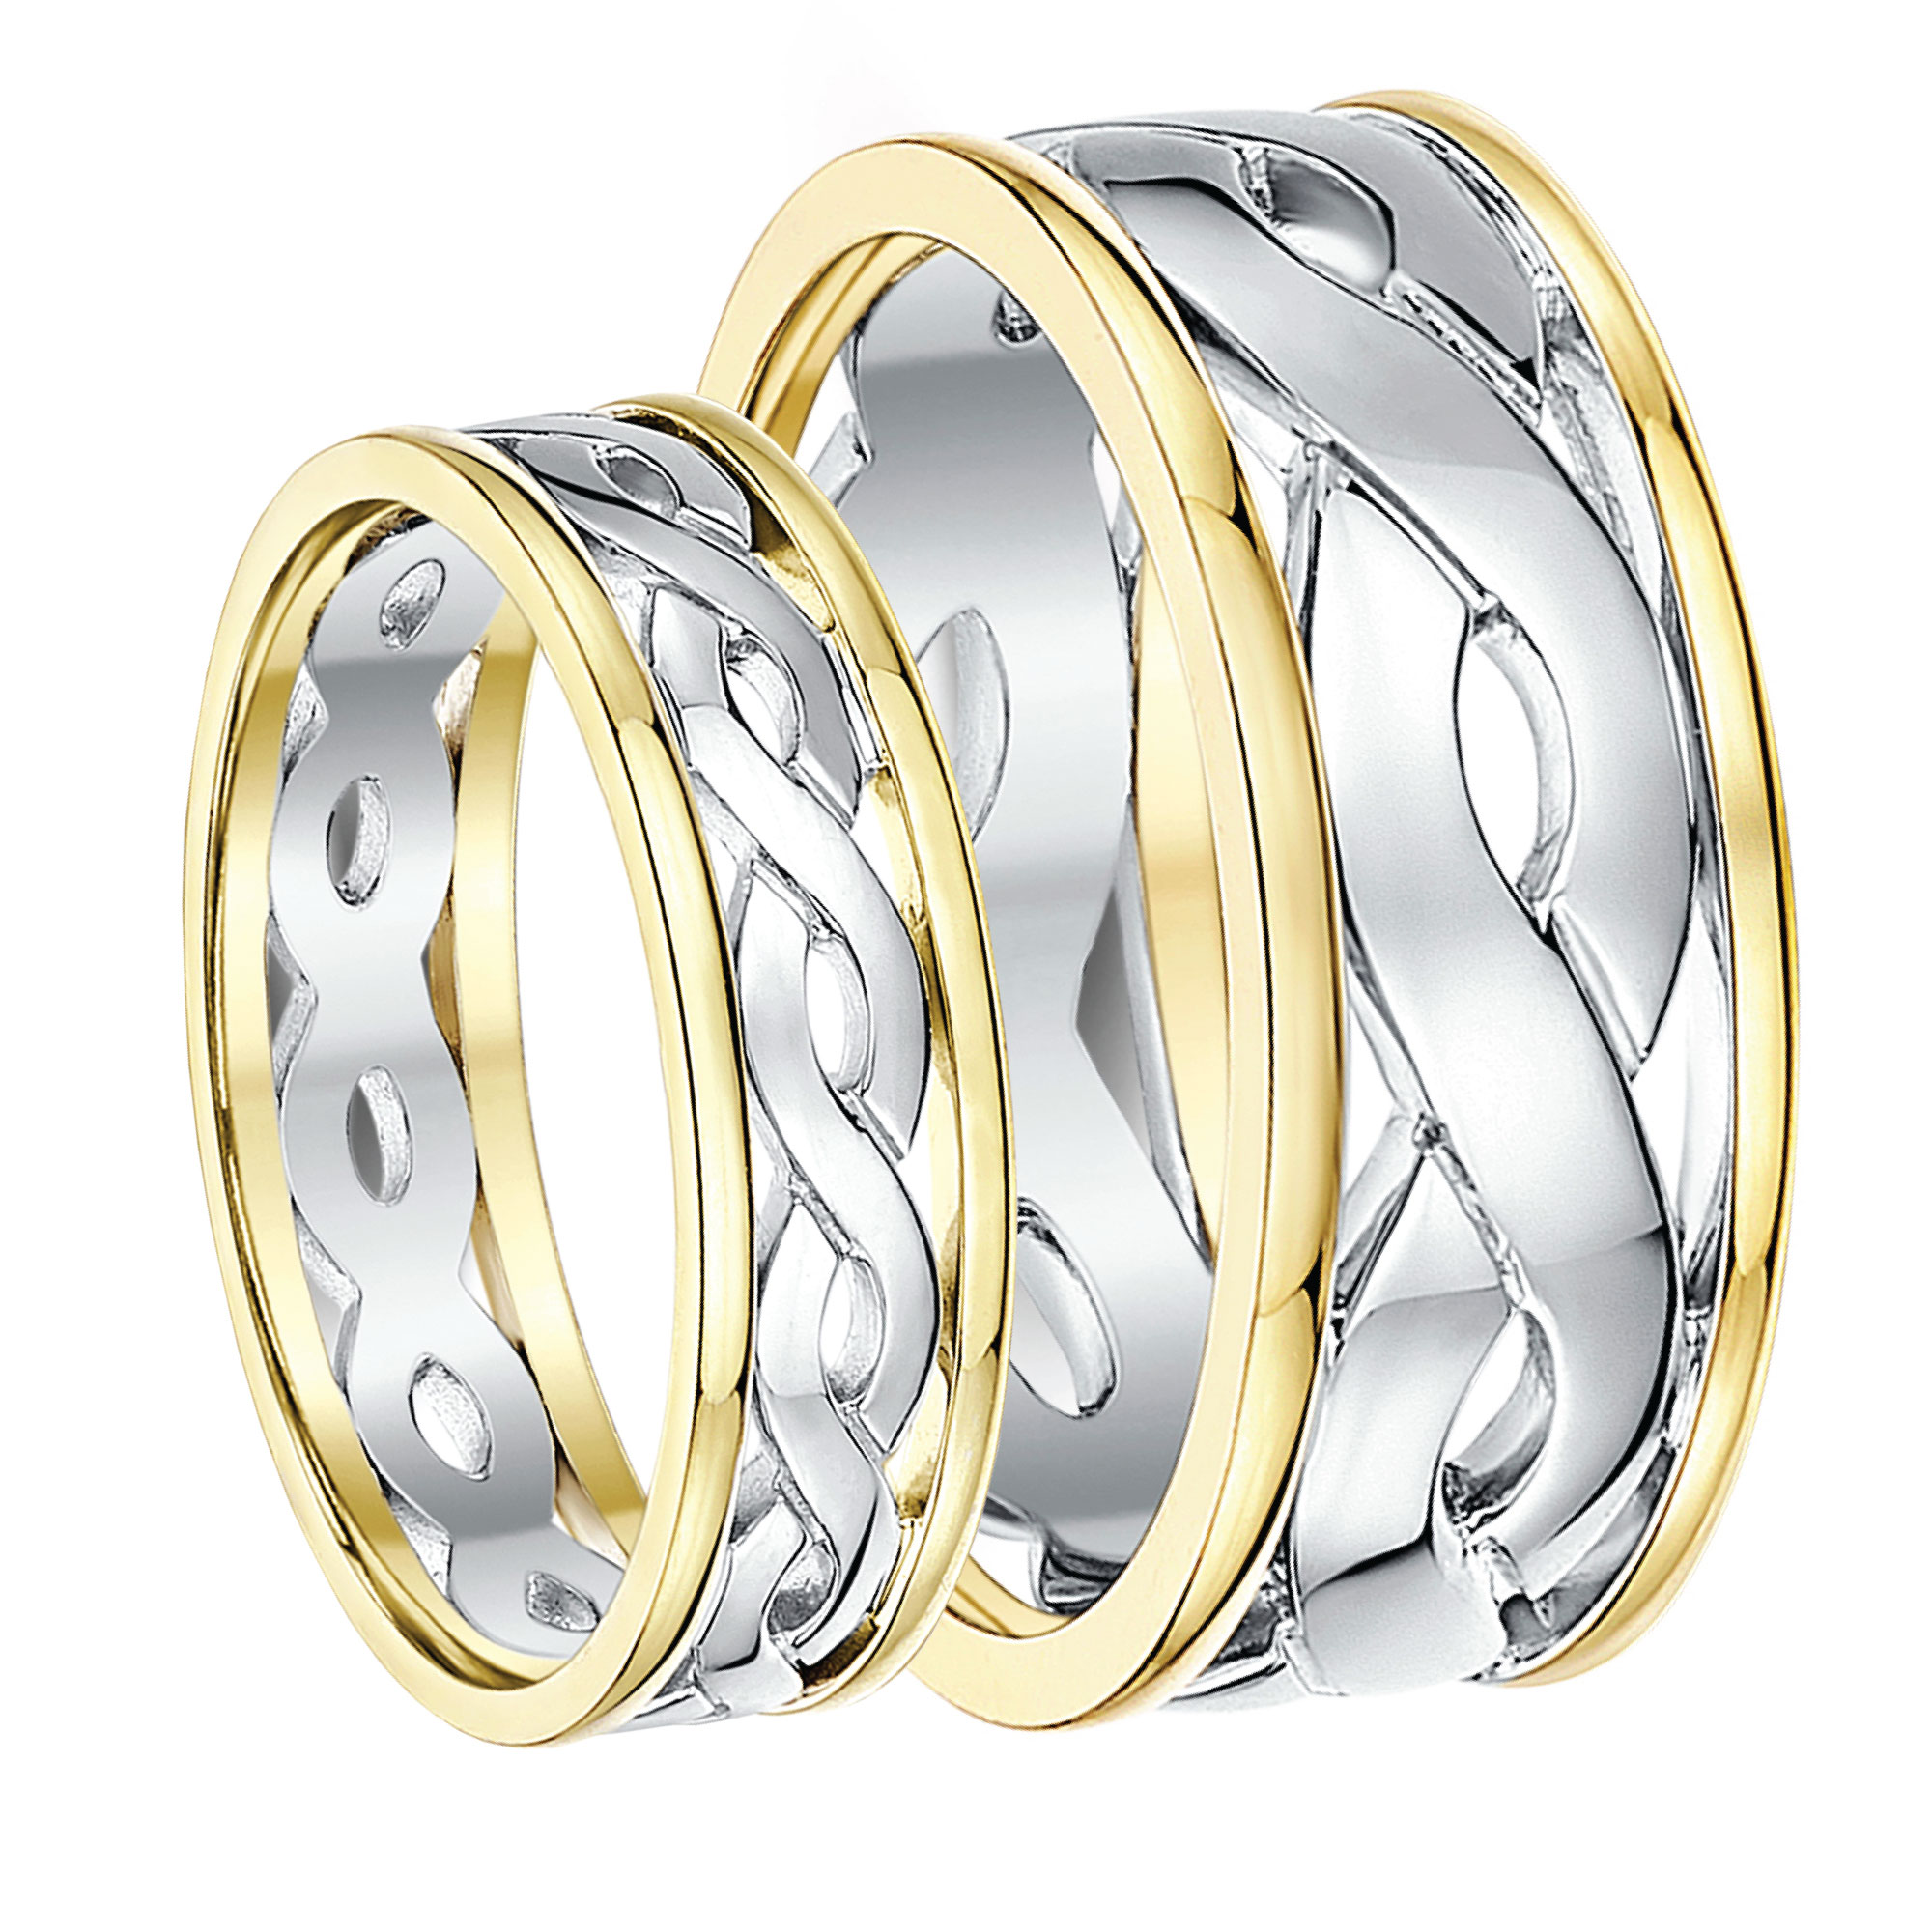 olympus rings astounding celtic stylish inspired digital sets inside gaelic camera wedding com matvuk